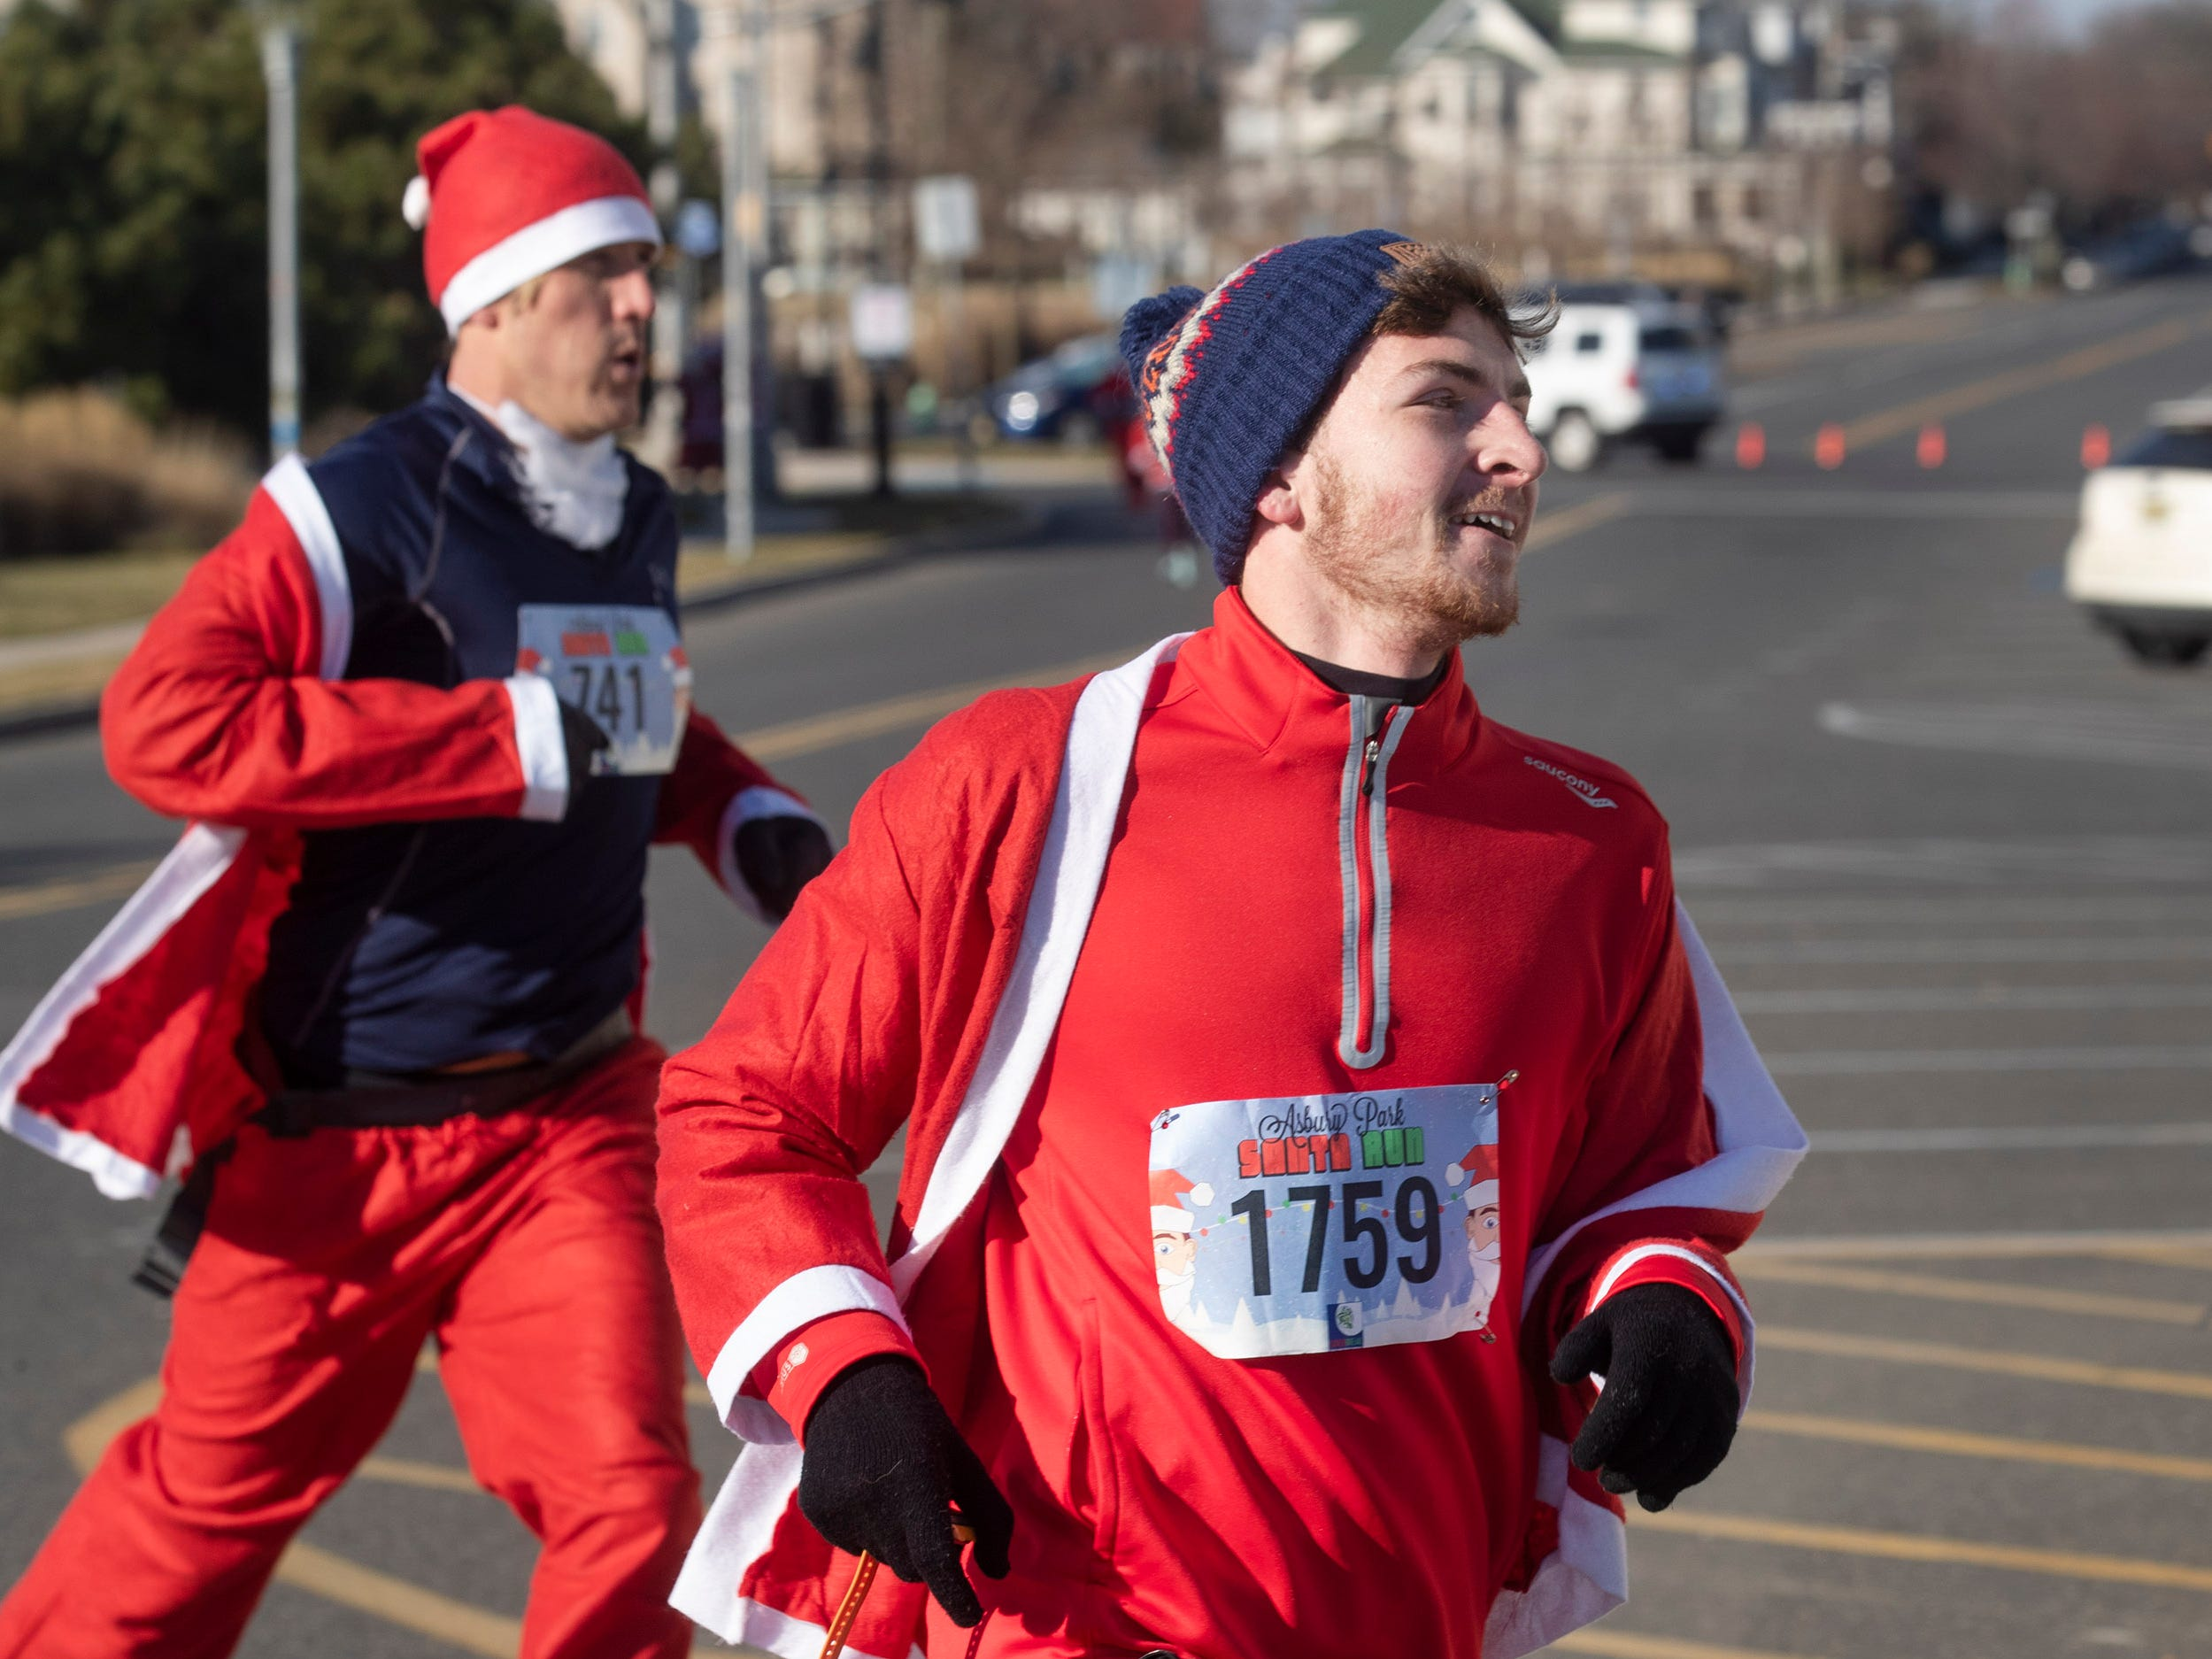 Kevin Knoetig has the lead after first lap and kept it to be the eventual winnerRunners brave the cold to participate in the annual Santa Run 5K in Asbury Park on December 8, 2018.